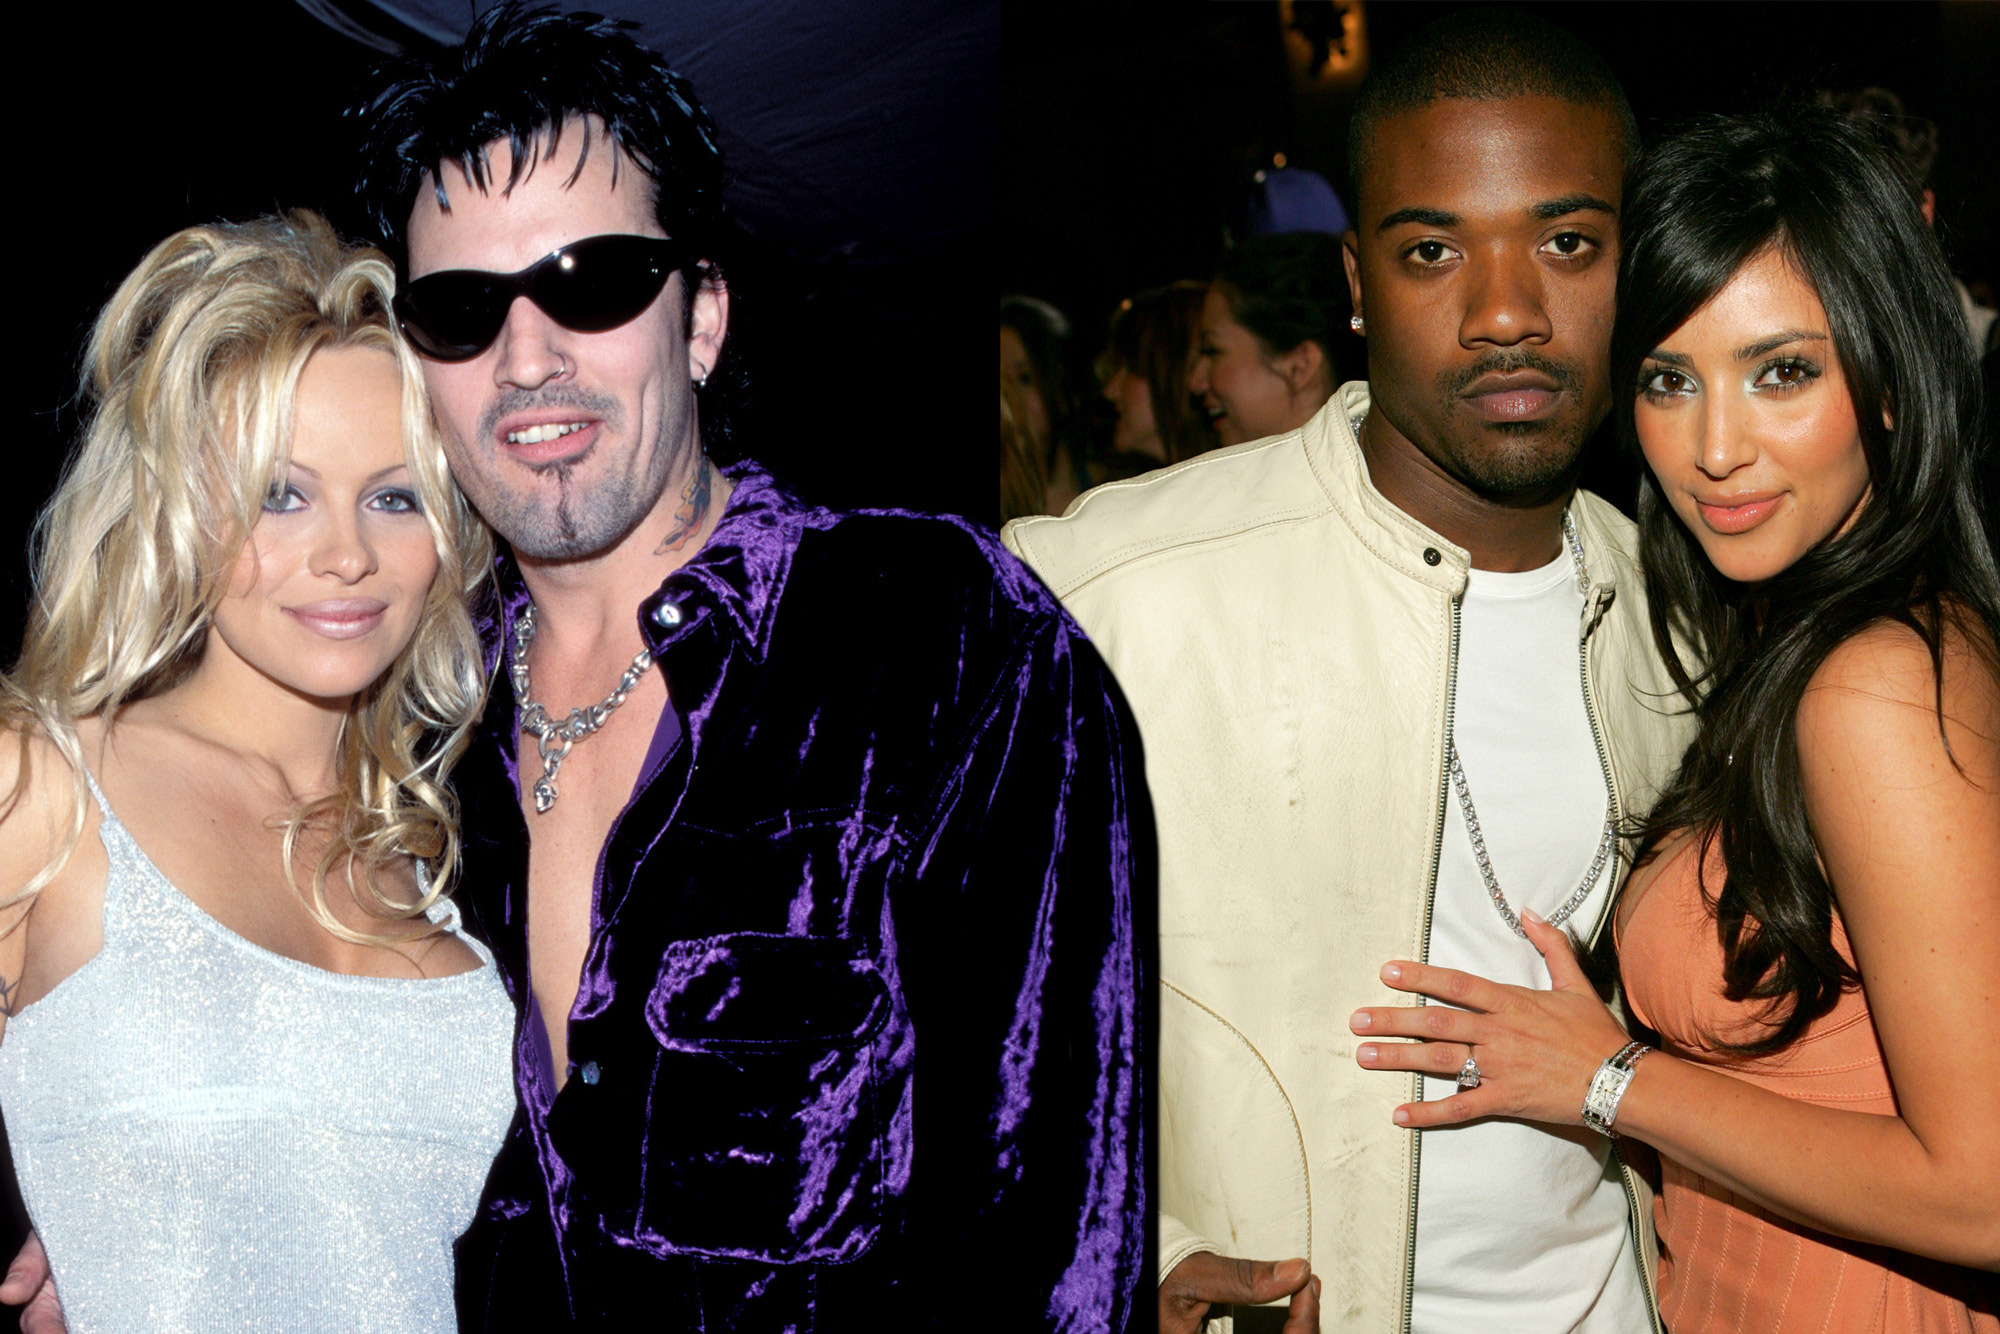 HOW MUCH MONEY DID THESE 13 CELEBRITY SEX TAPES MAKE